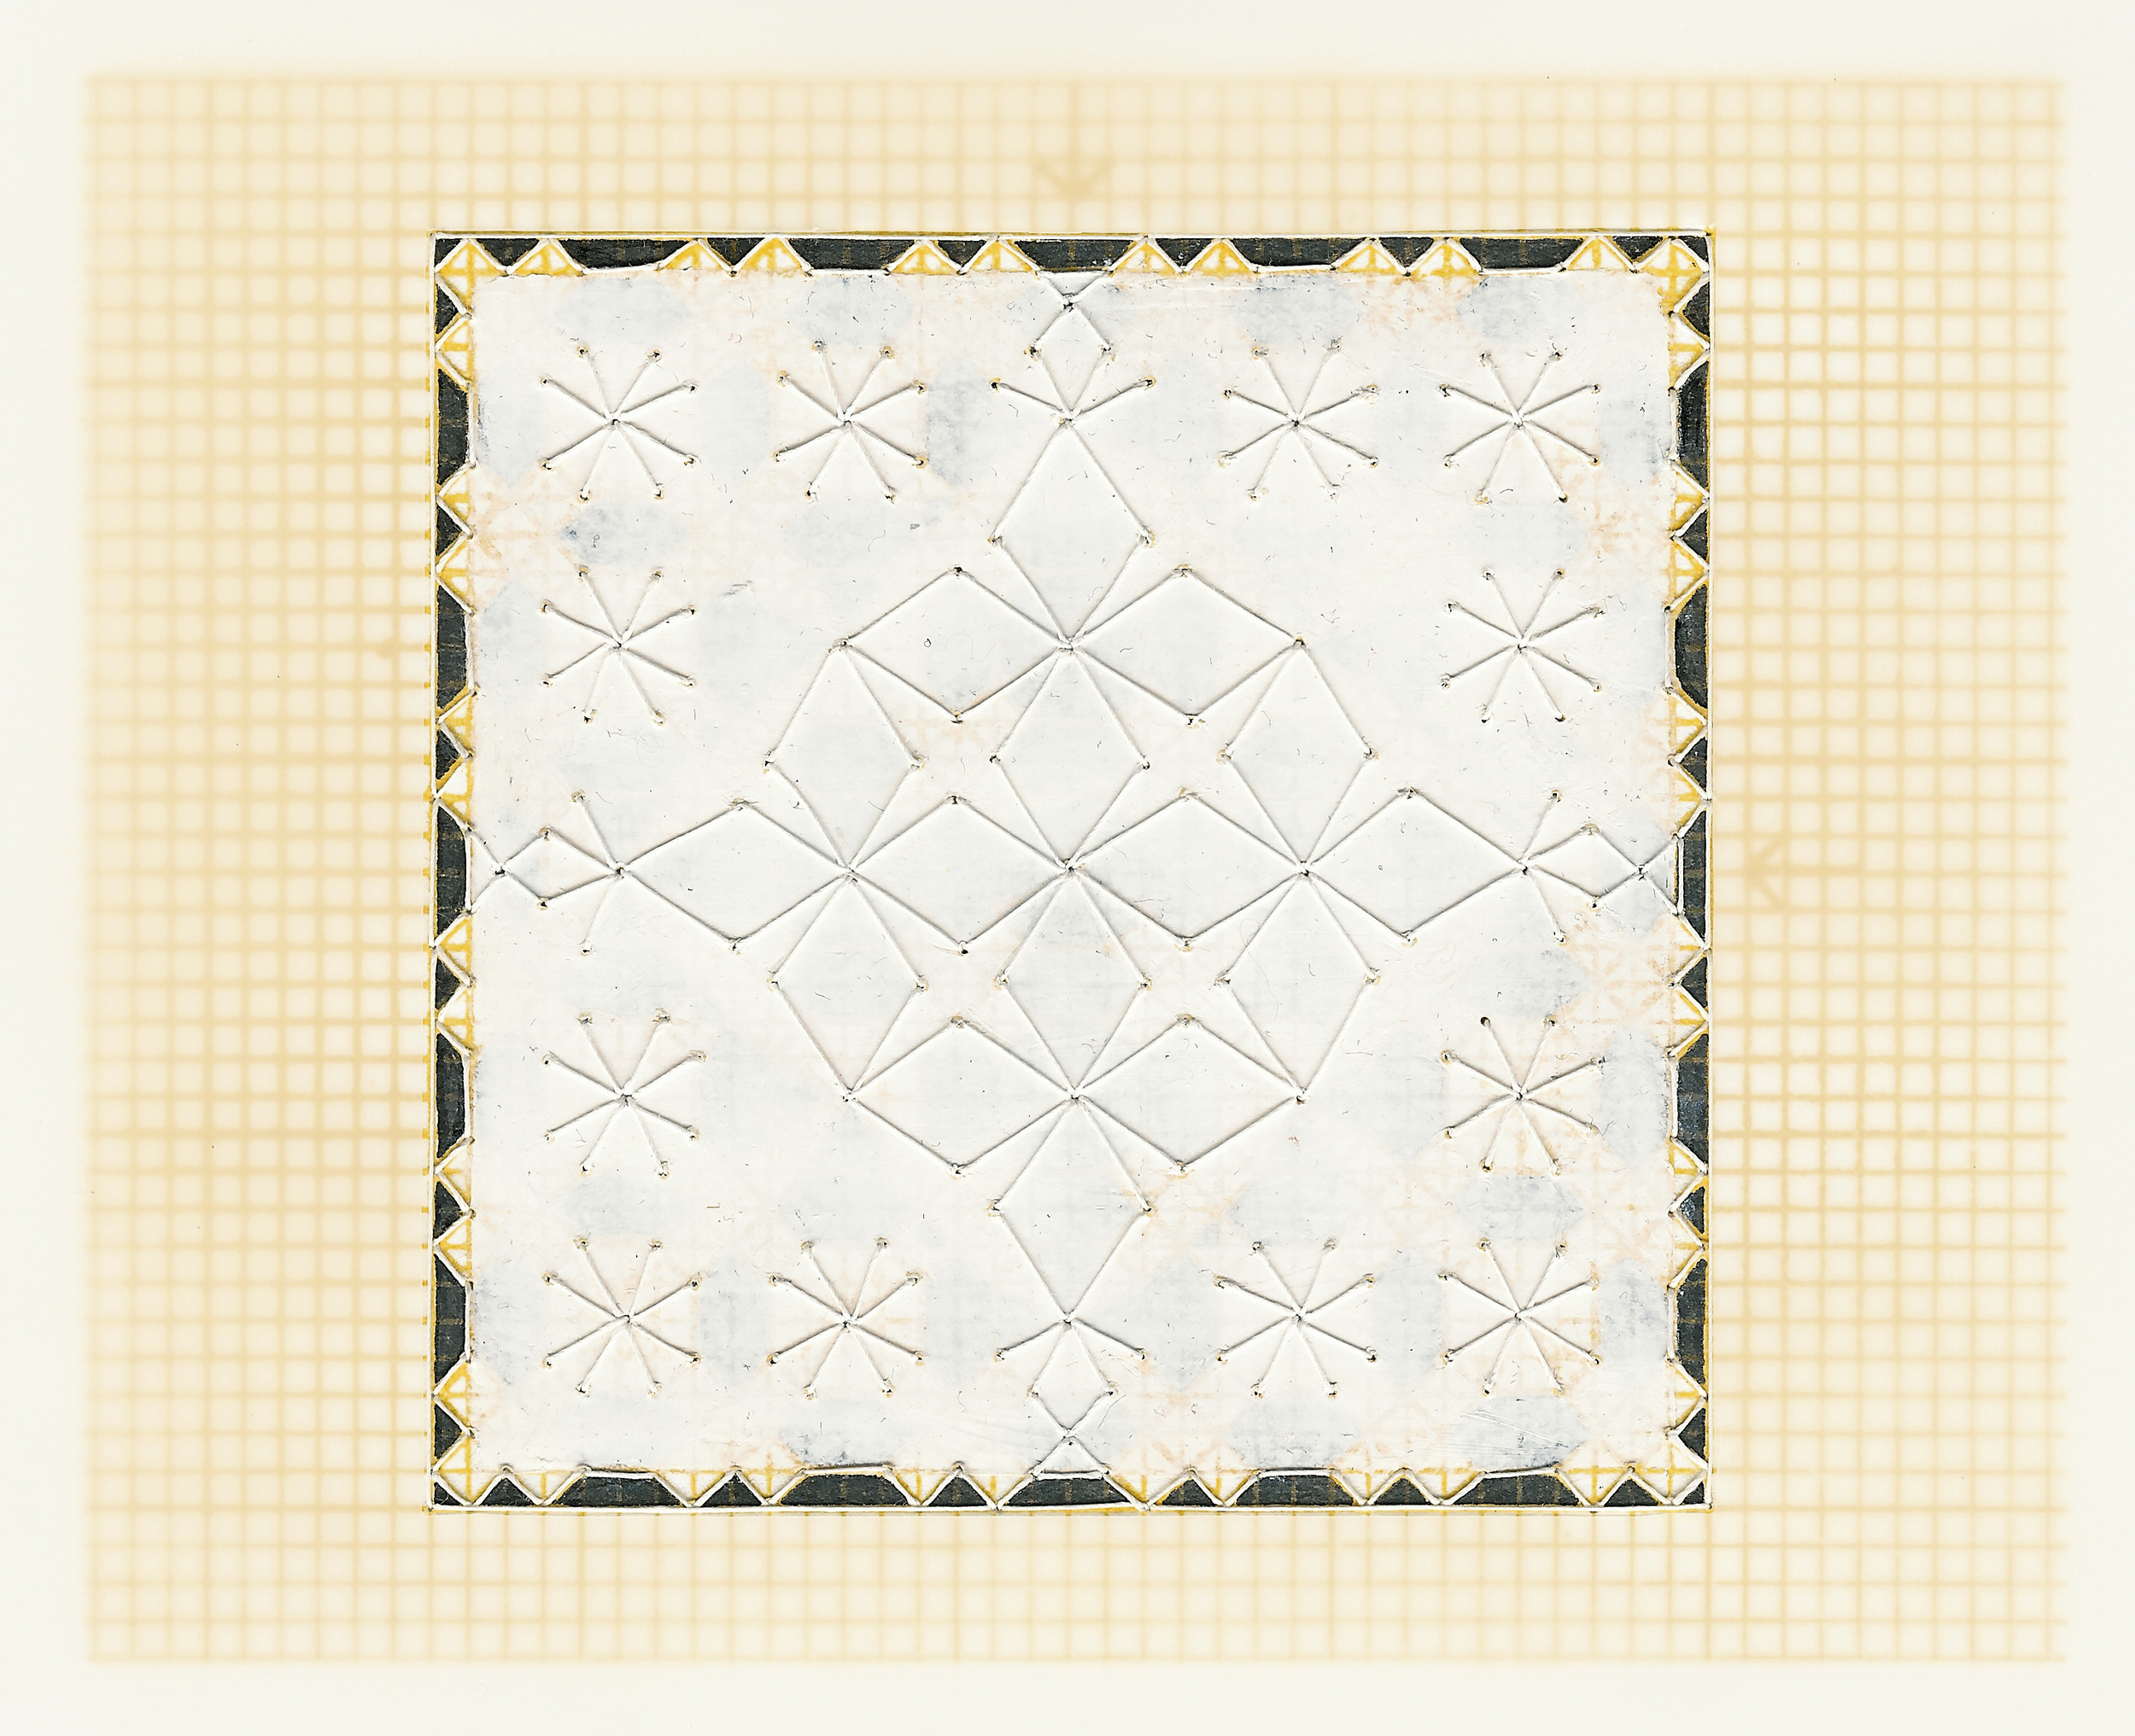 Untitled Pattern Study with diamond overlay.jpg